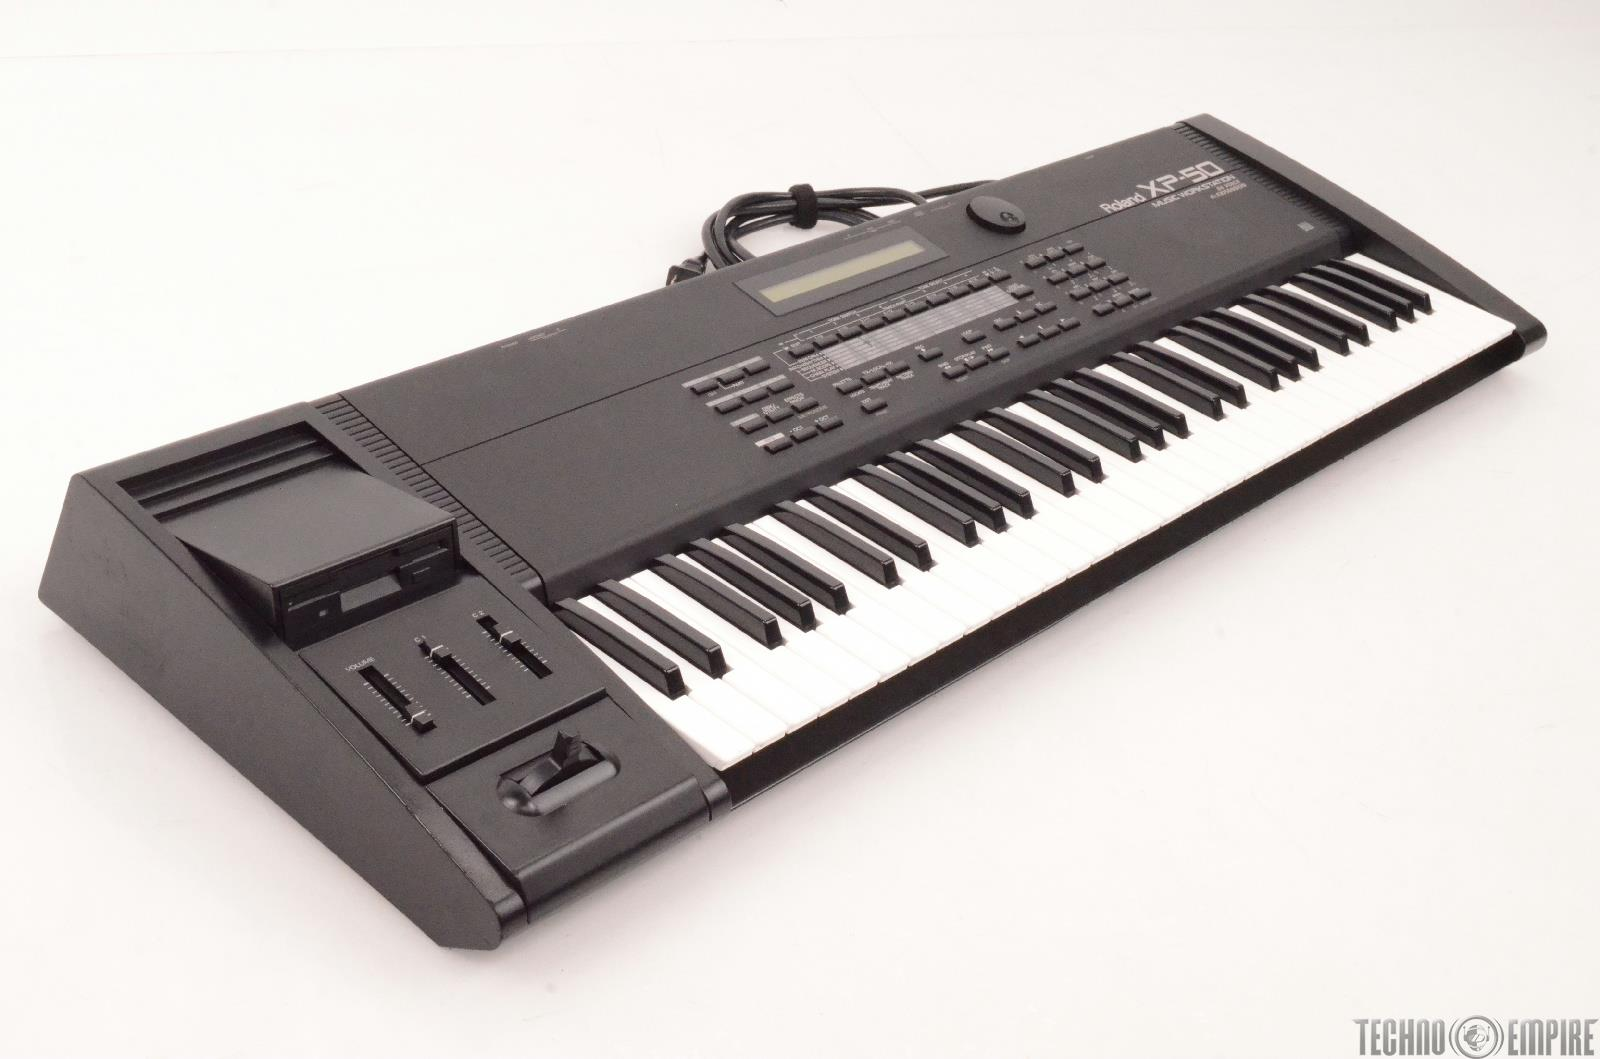 Musician Keyboard Workstations : roland xp 50 music workstation 61 key keyboard 64 voice 4x expansion midi 27148 ebay ~ Vivirlamusica.com Haus und Dekorationen